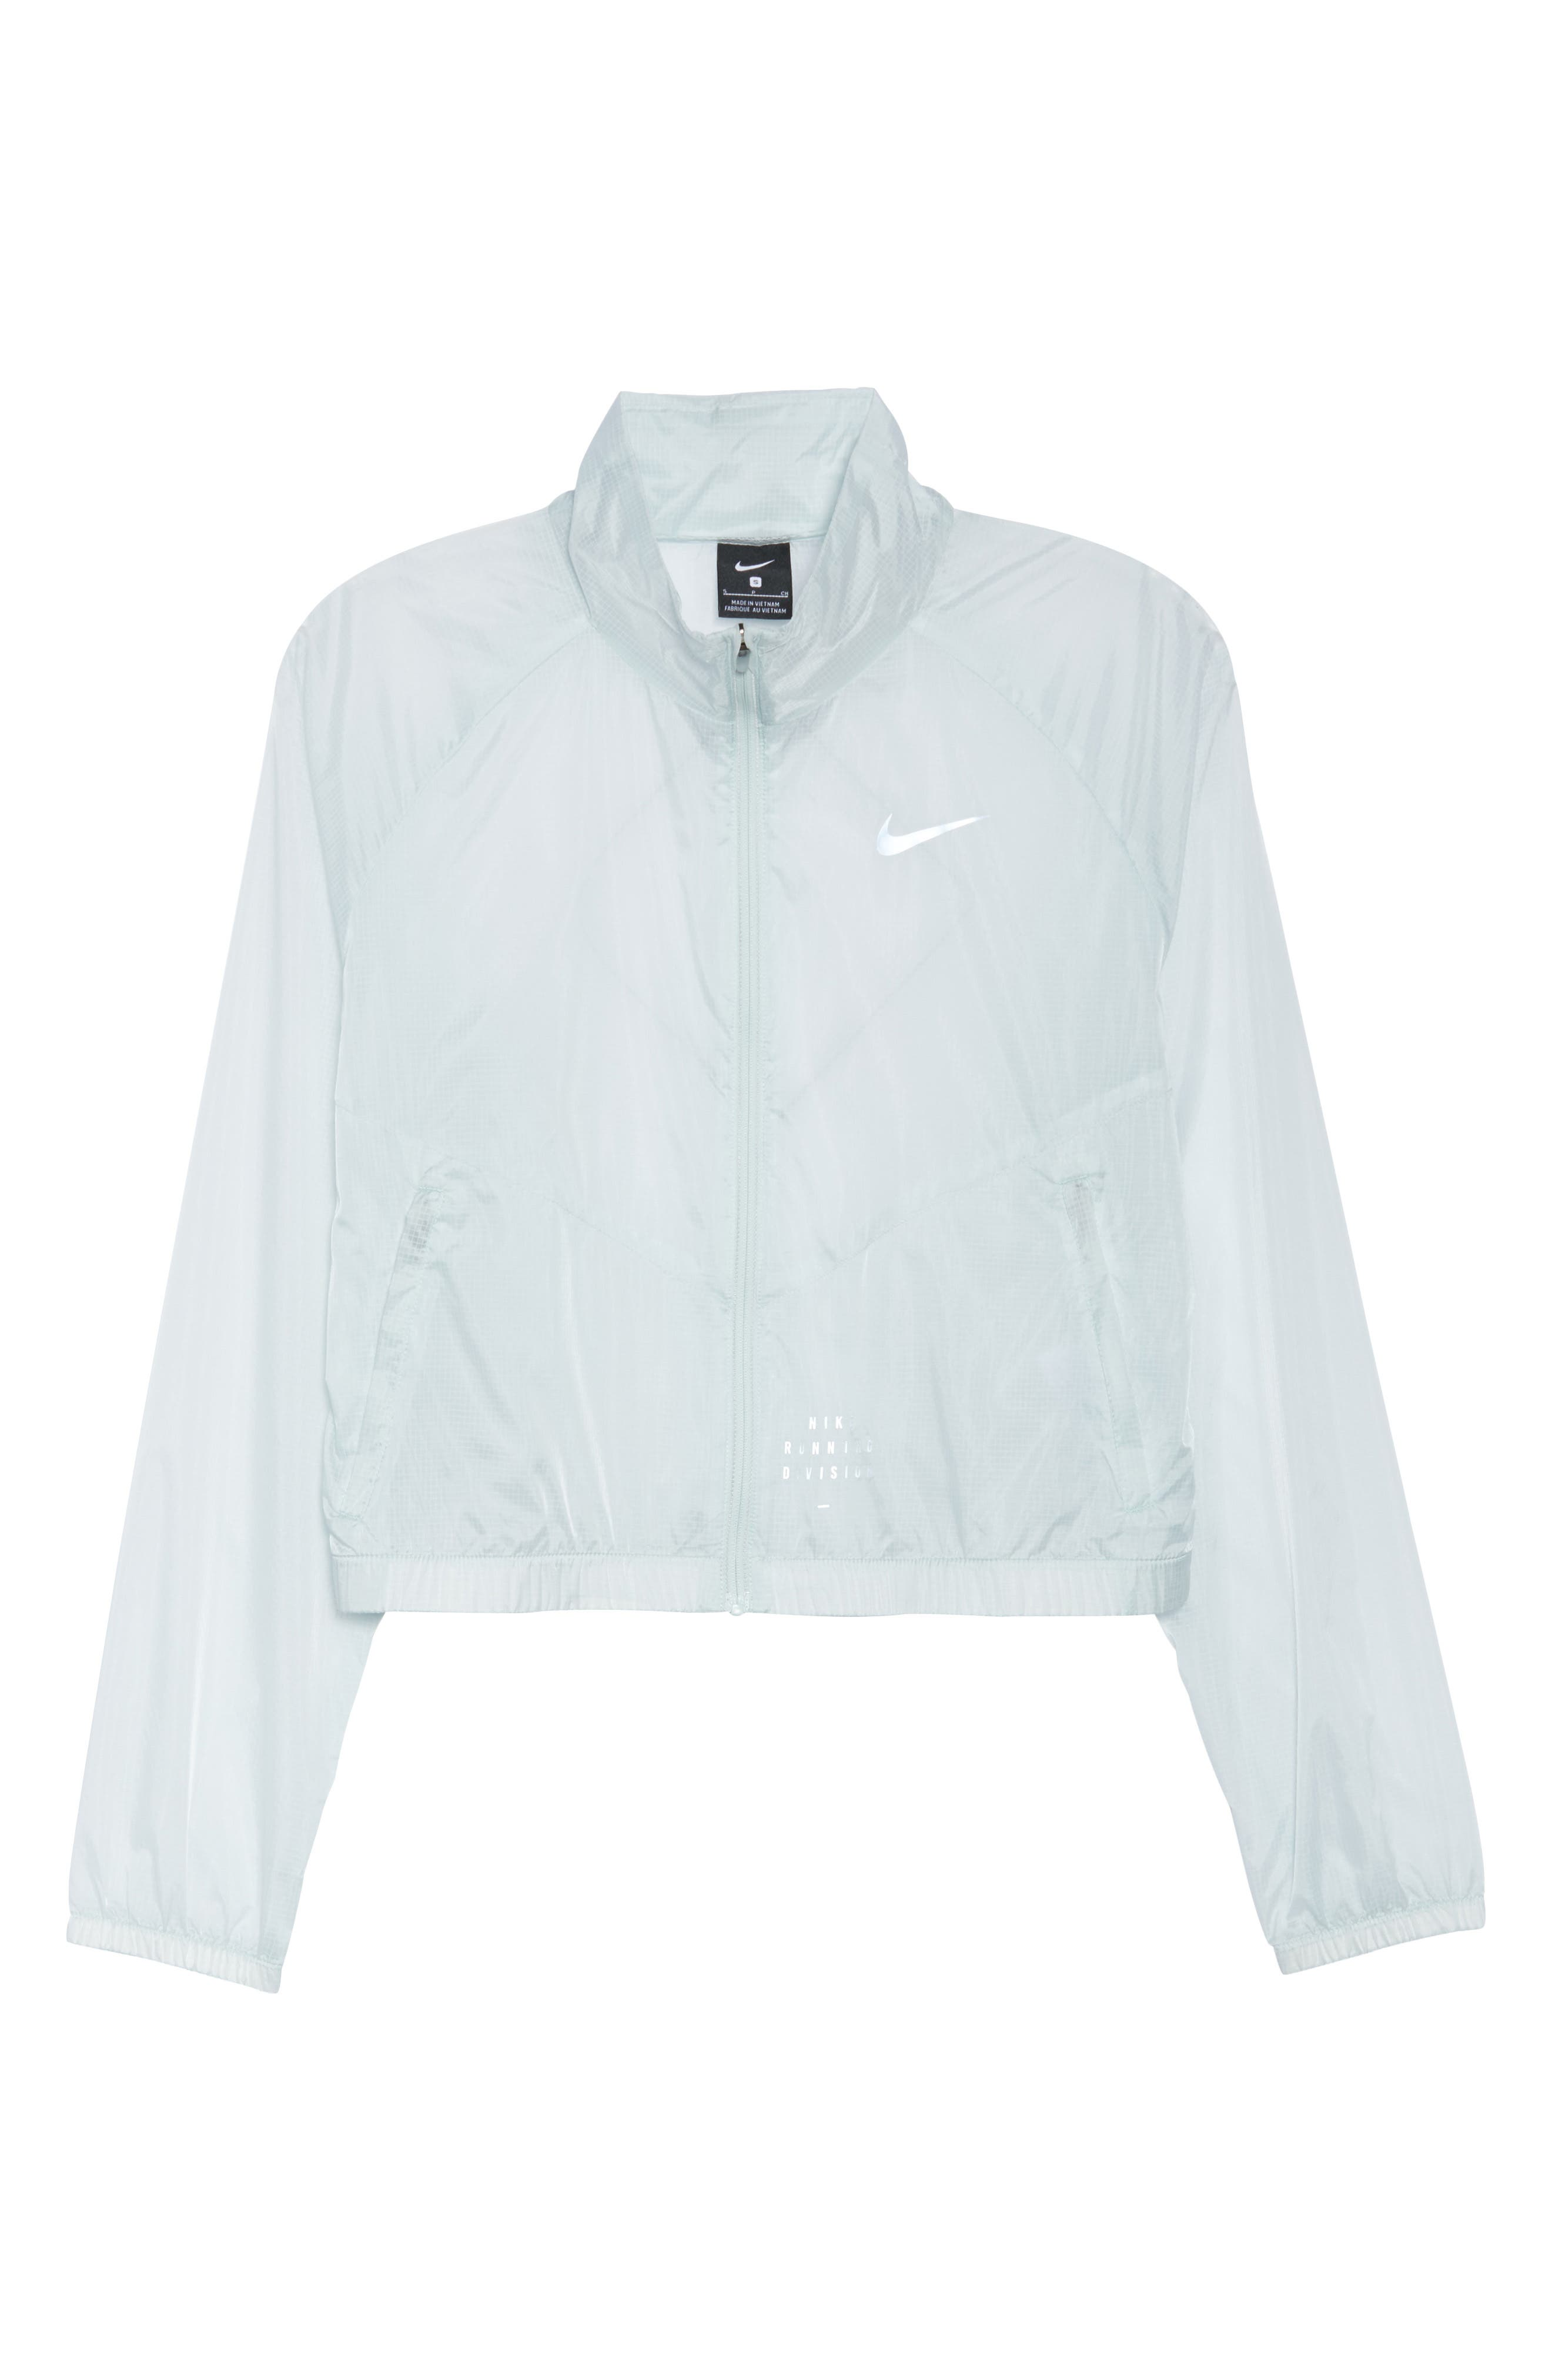 Transparent Running Jacket,                             Alternate thumbnail 6, color,                             026